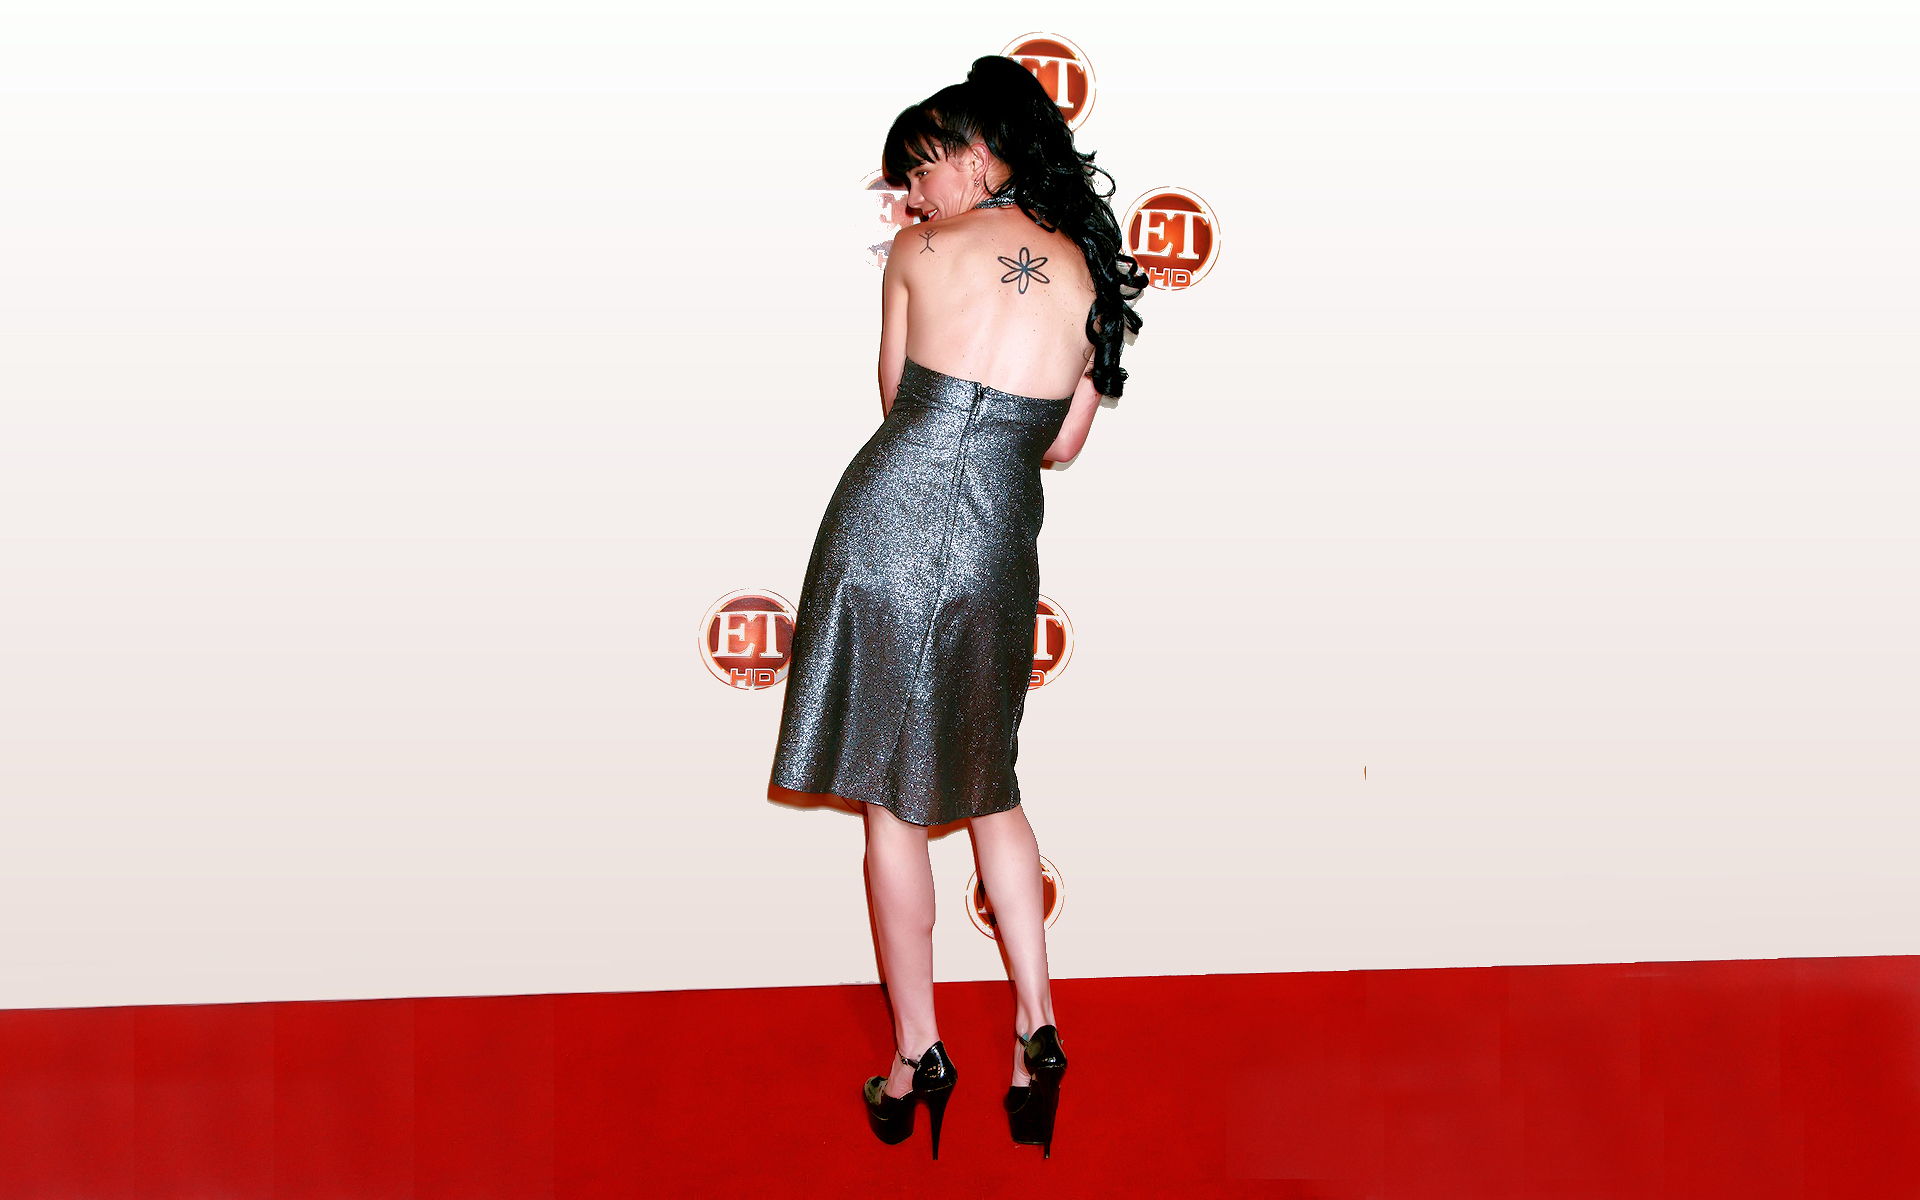 Pauley Perrette (Abby Sciuto) wallpaper